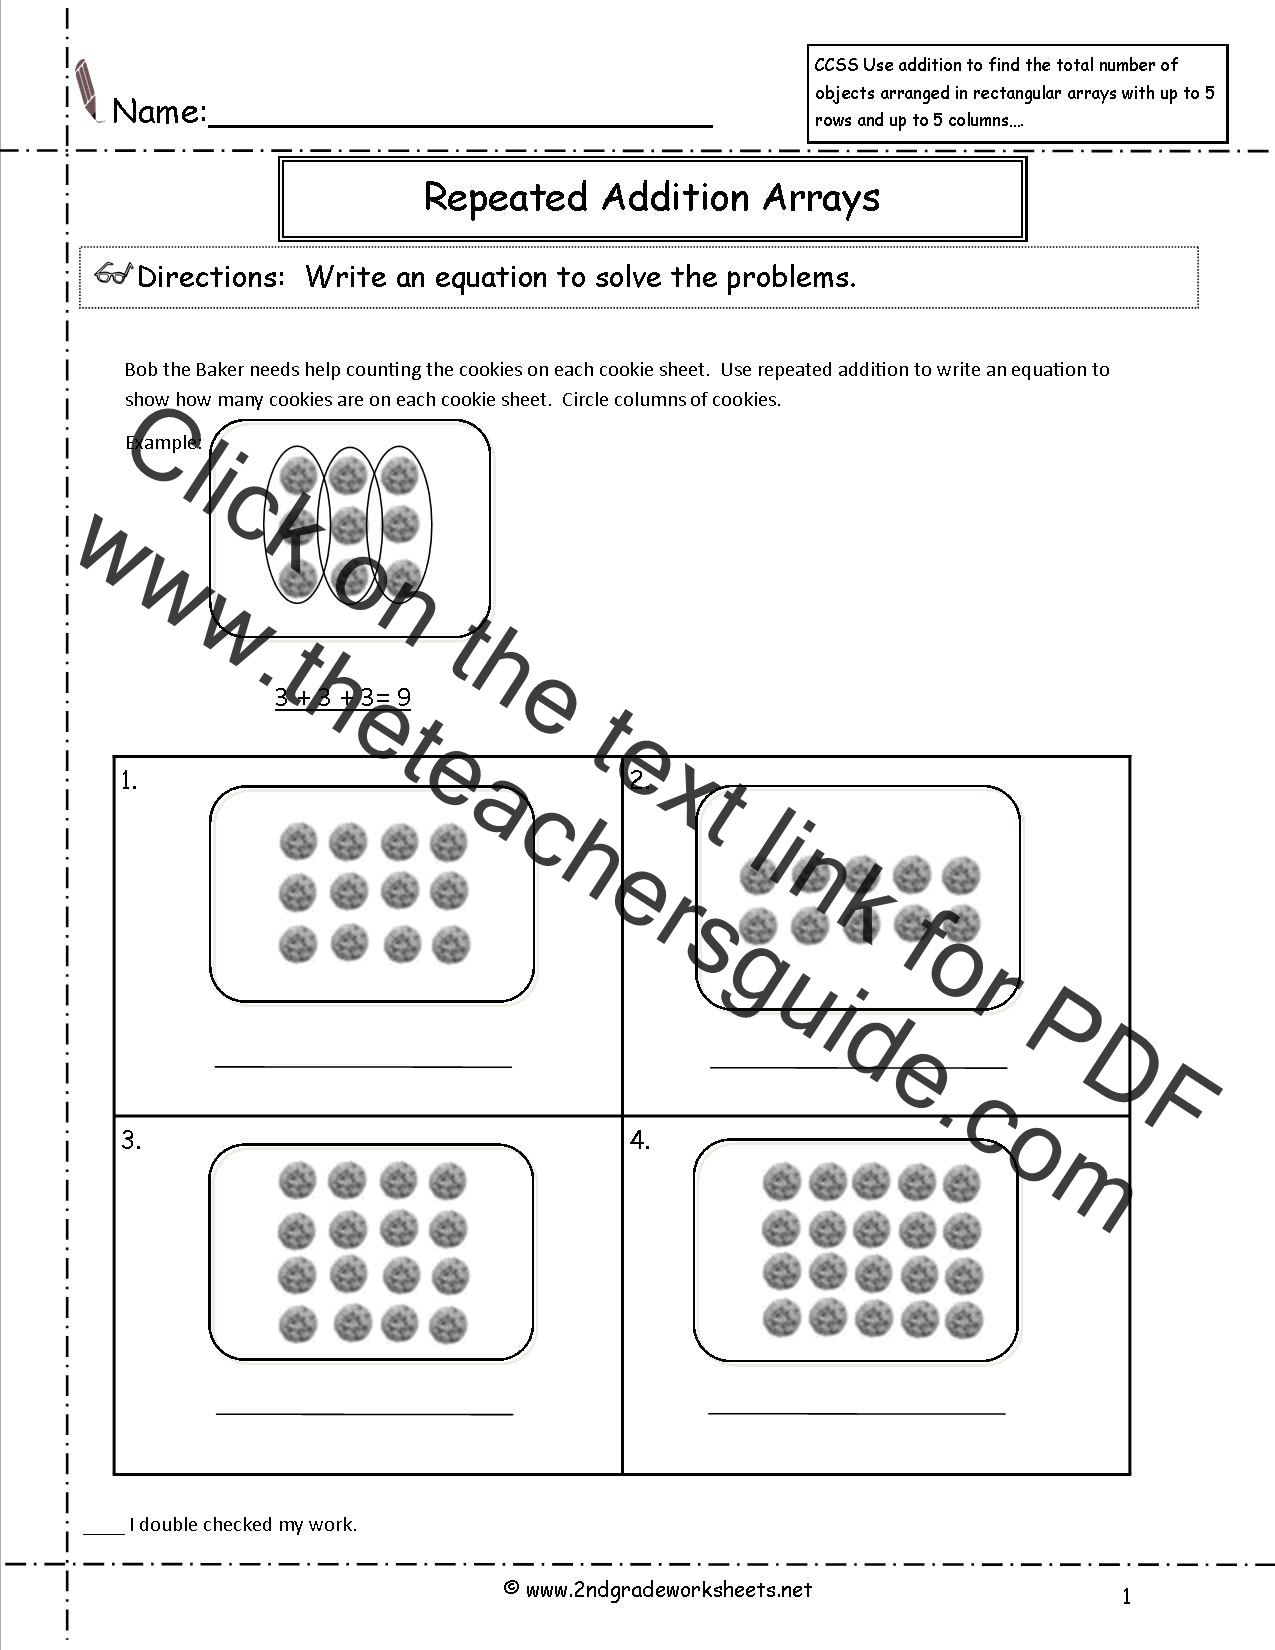 Printables 6th Grade Math Common Core Worksheets 2nd grade math common core state standards worksheets oa 4 worksheets